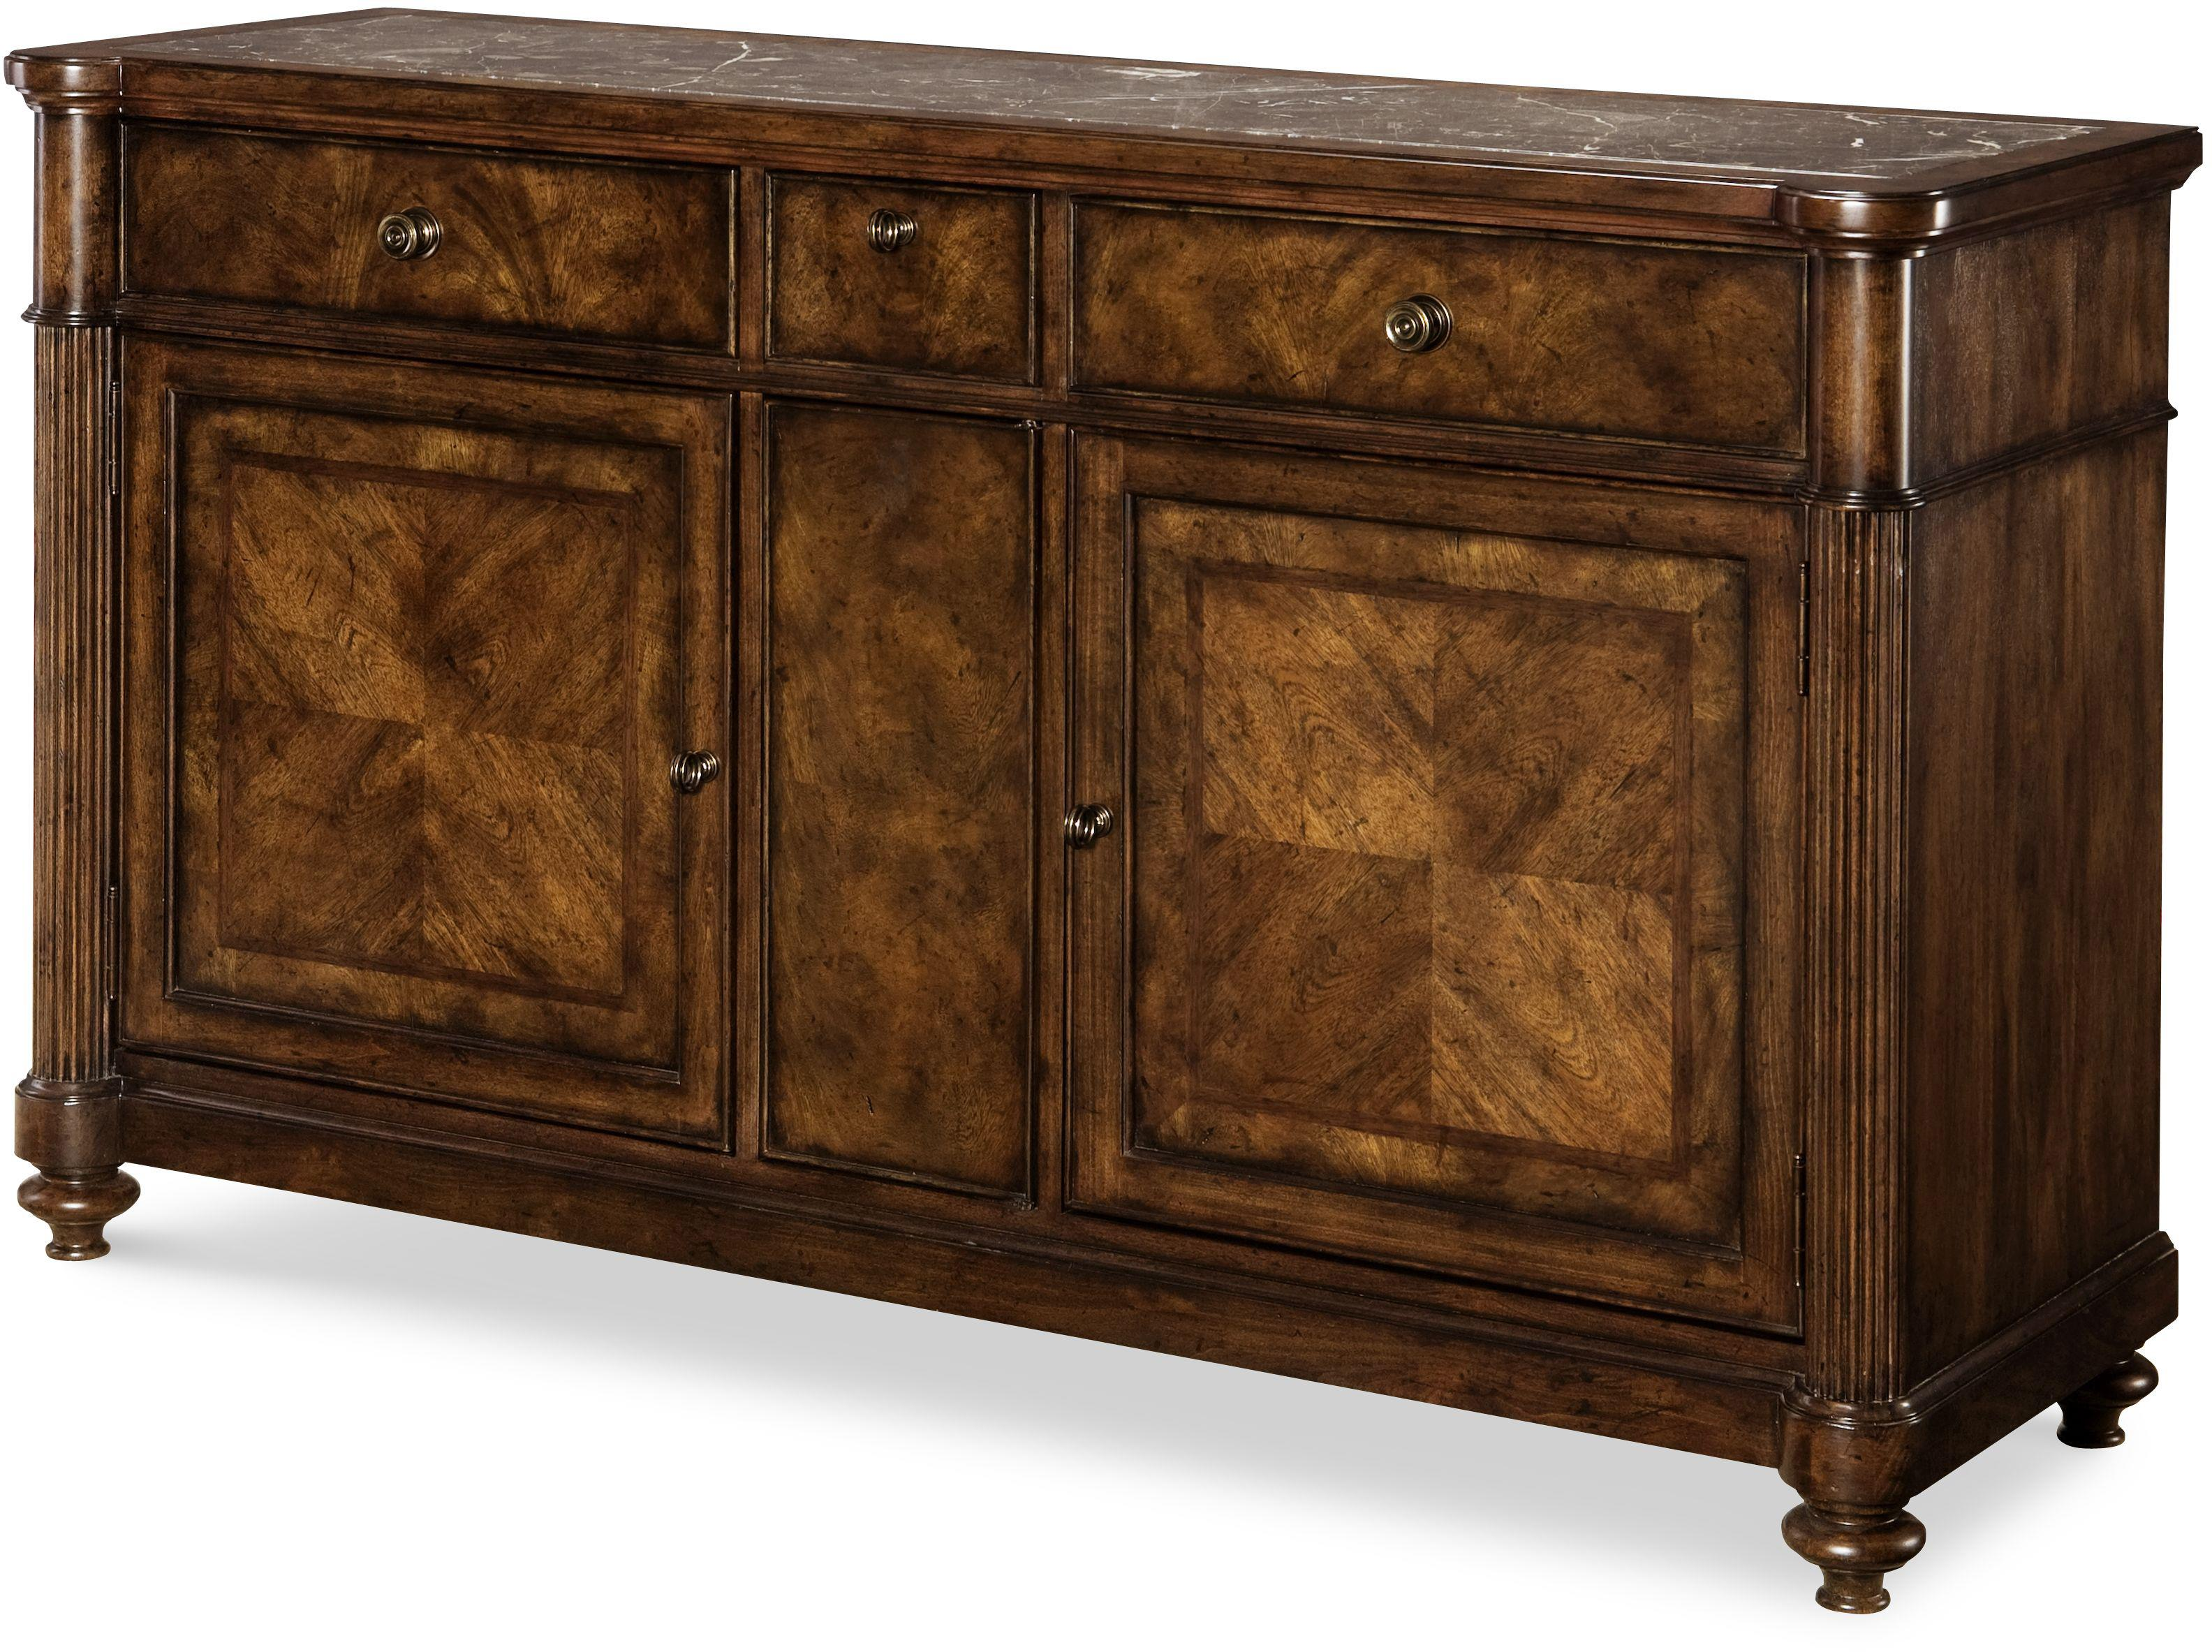 Legacy Classic Barrington Farm Credenza  - Item Number: 5200-151